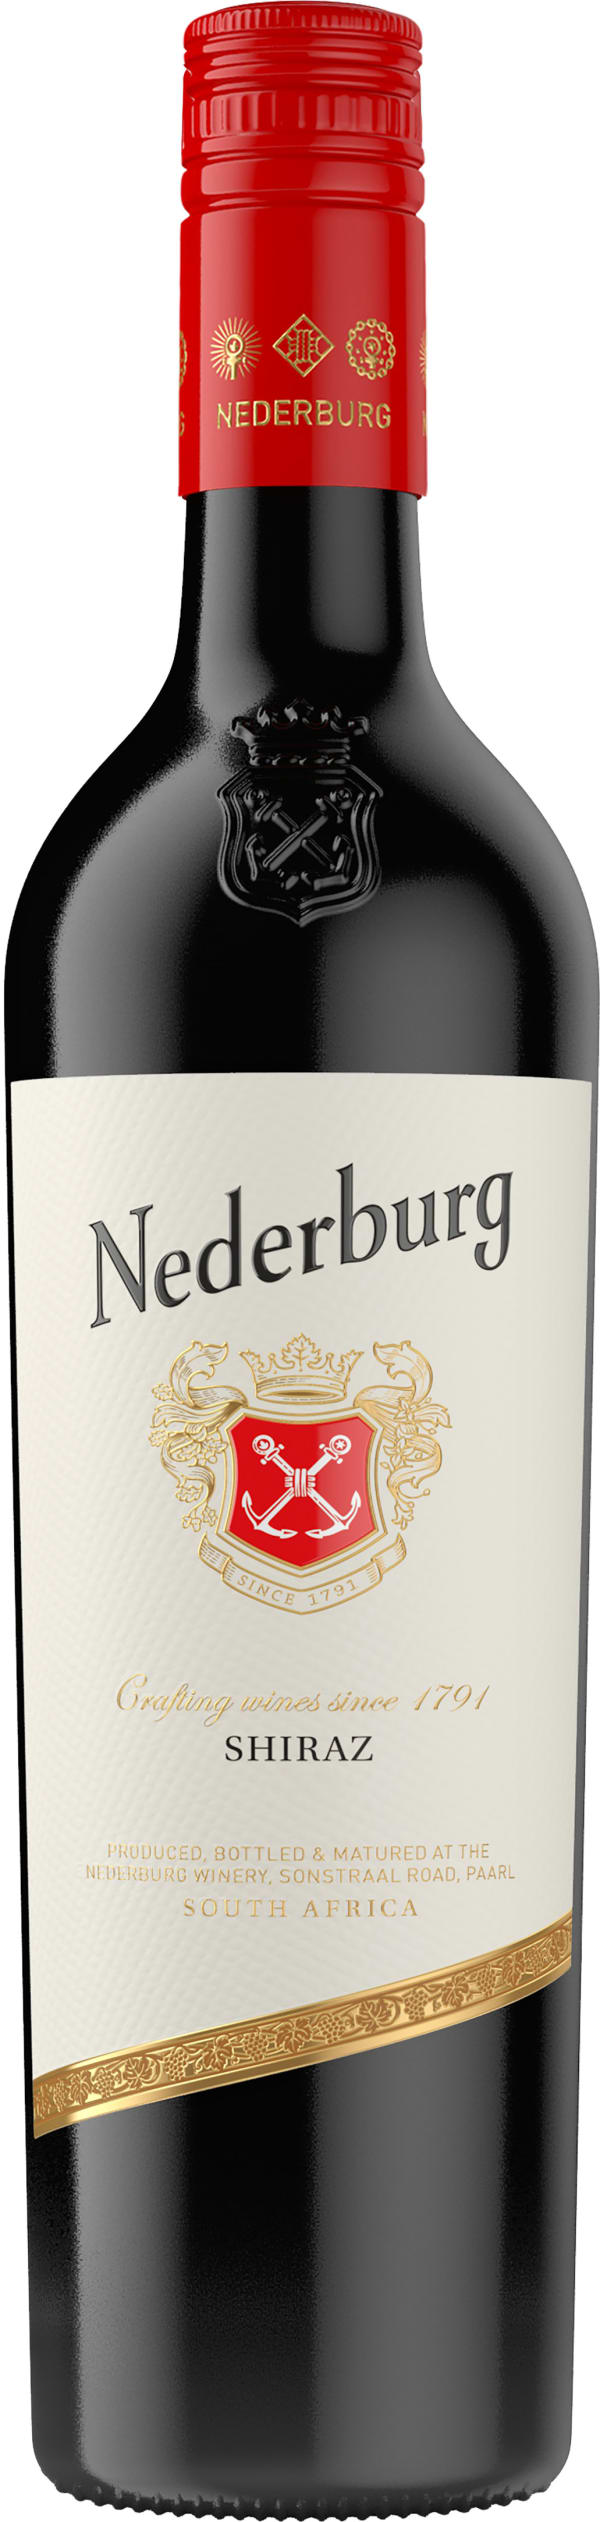 Nederburg Winemaster's Reserve Shiraz 2015